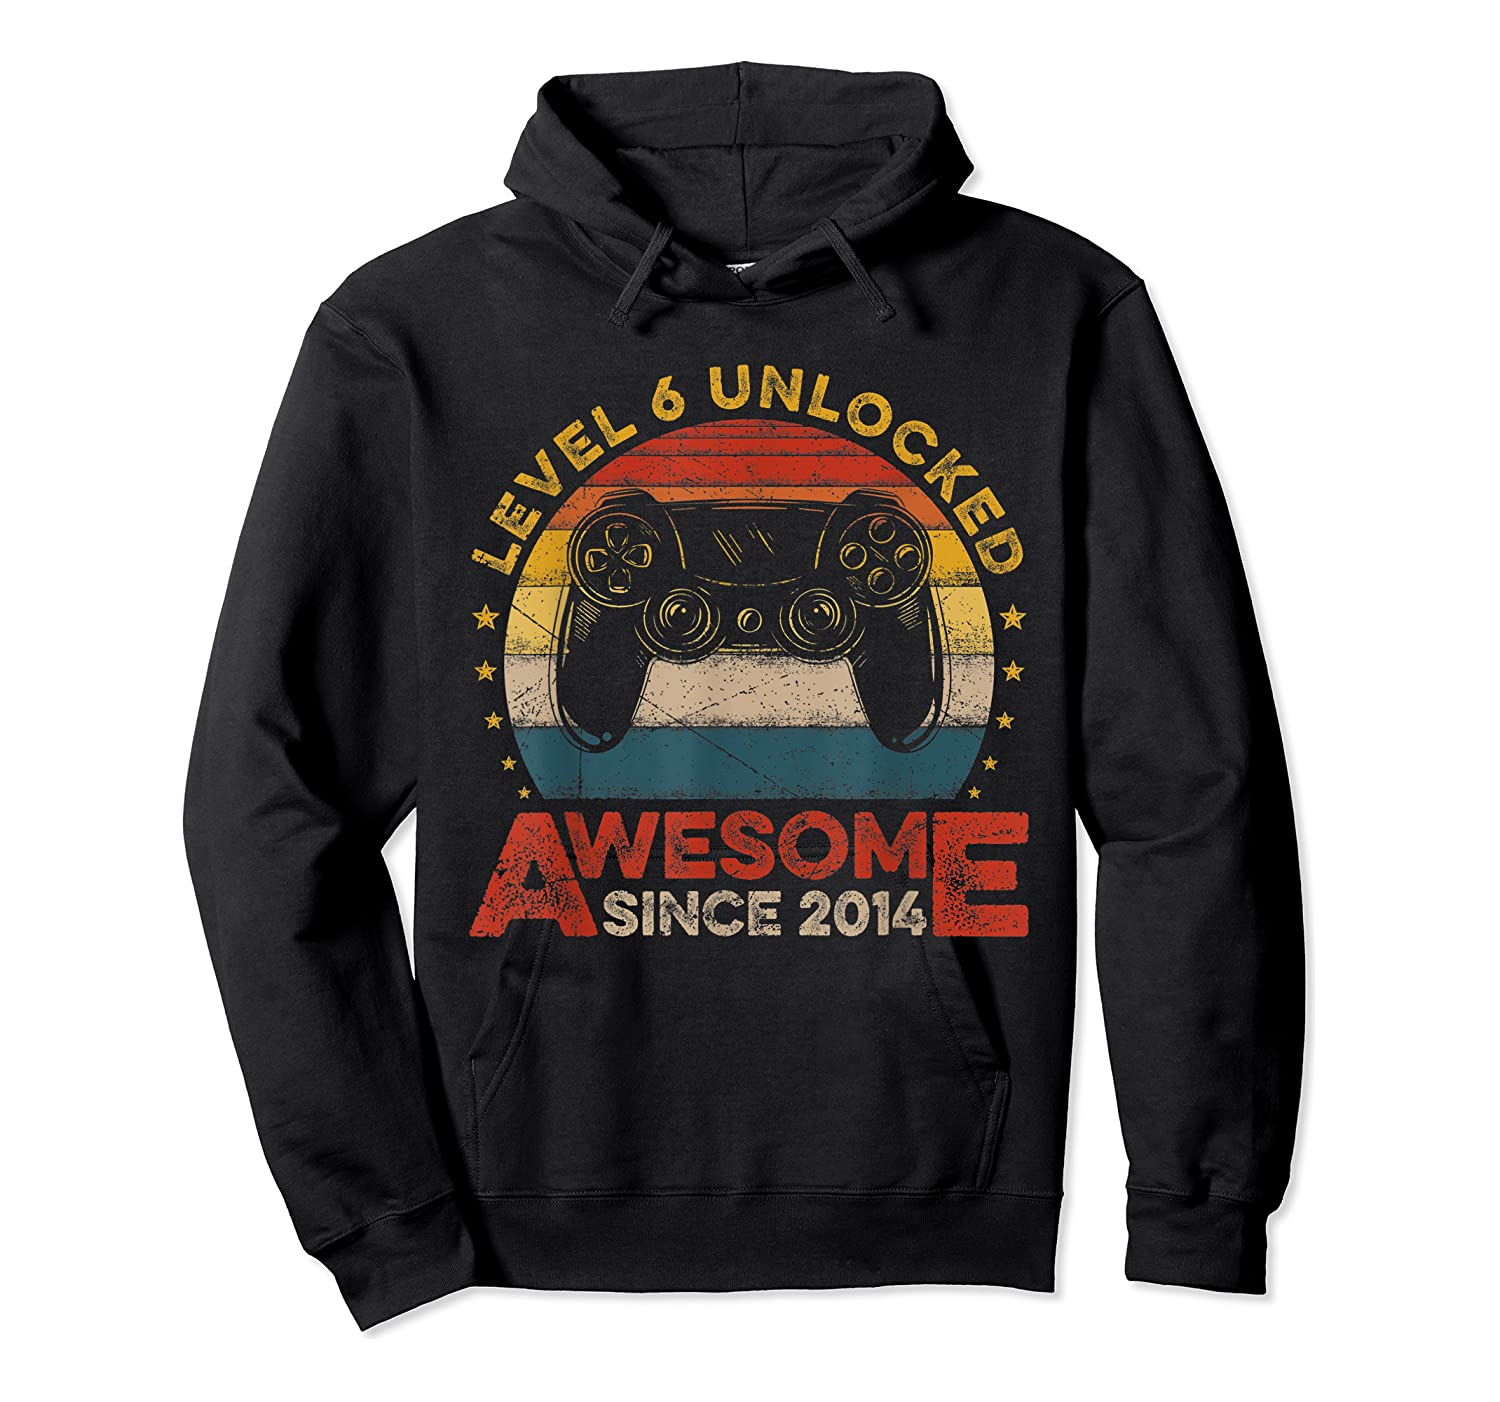 Retro 6th Birthday Gamer Level 6 Unlocked Awesome Since 2014 T-shirt Unisex Pullover Hoodie